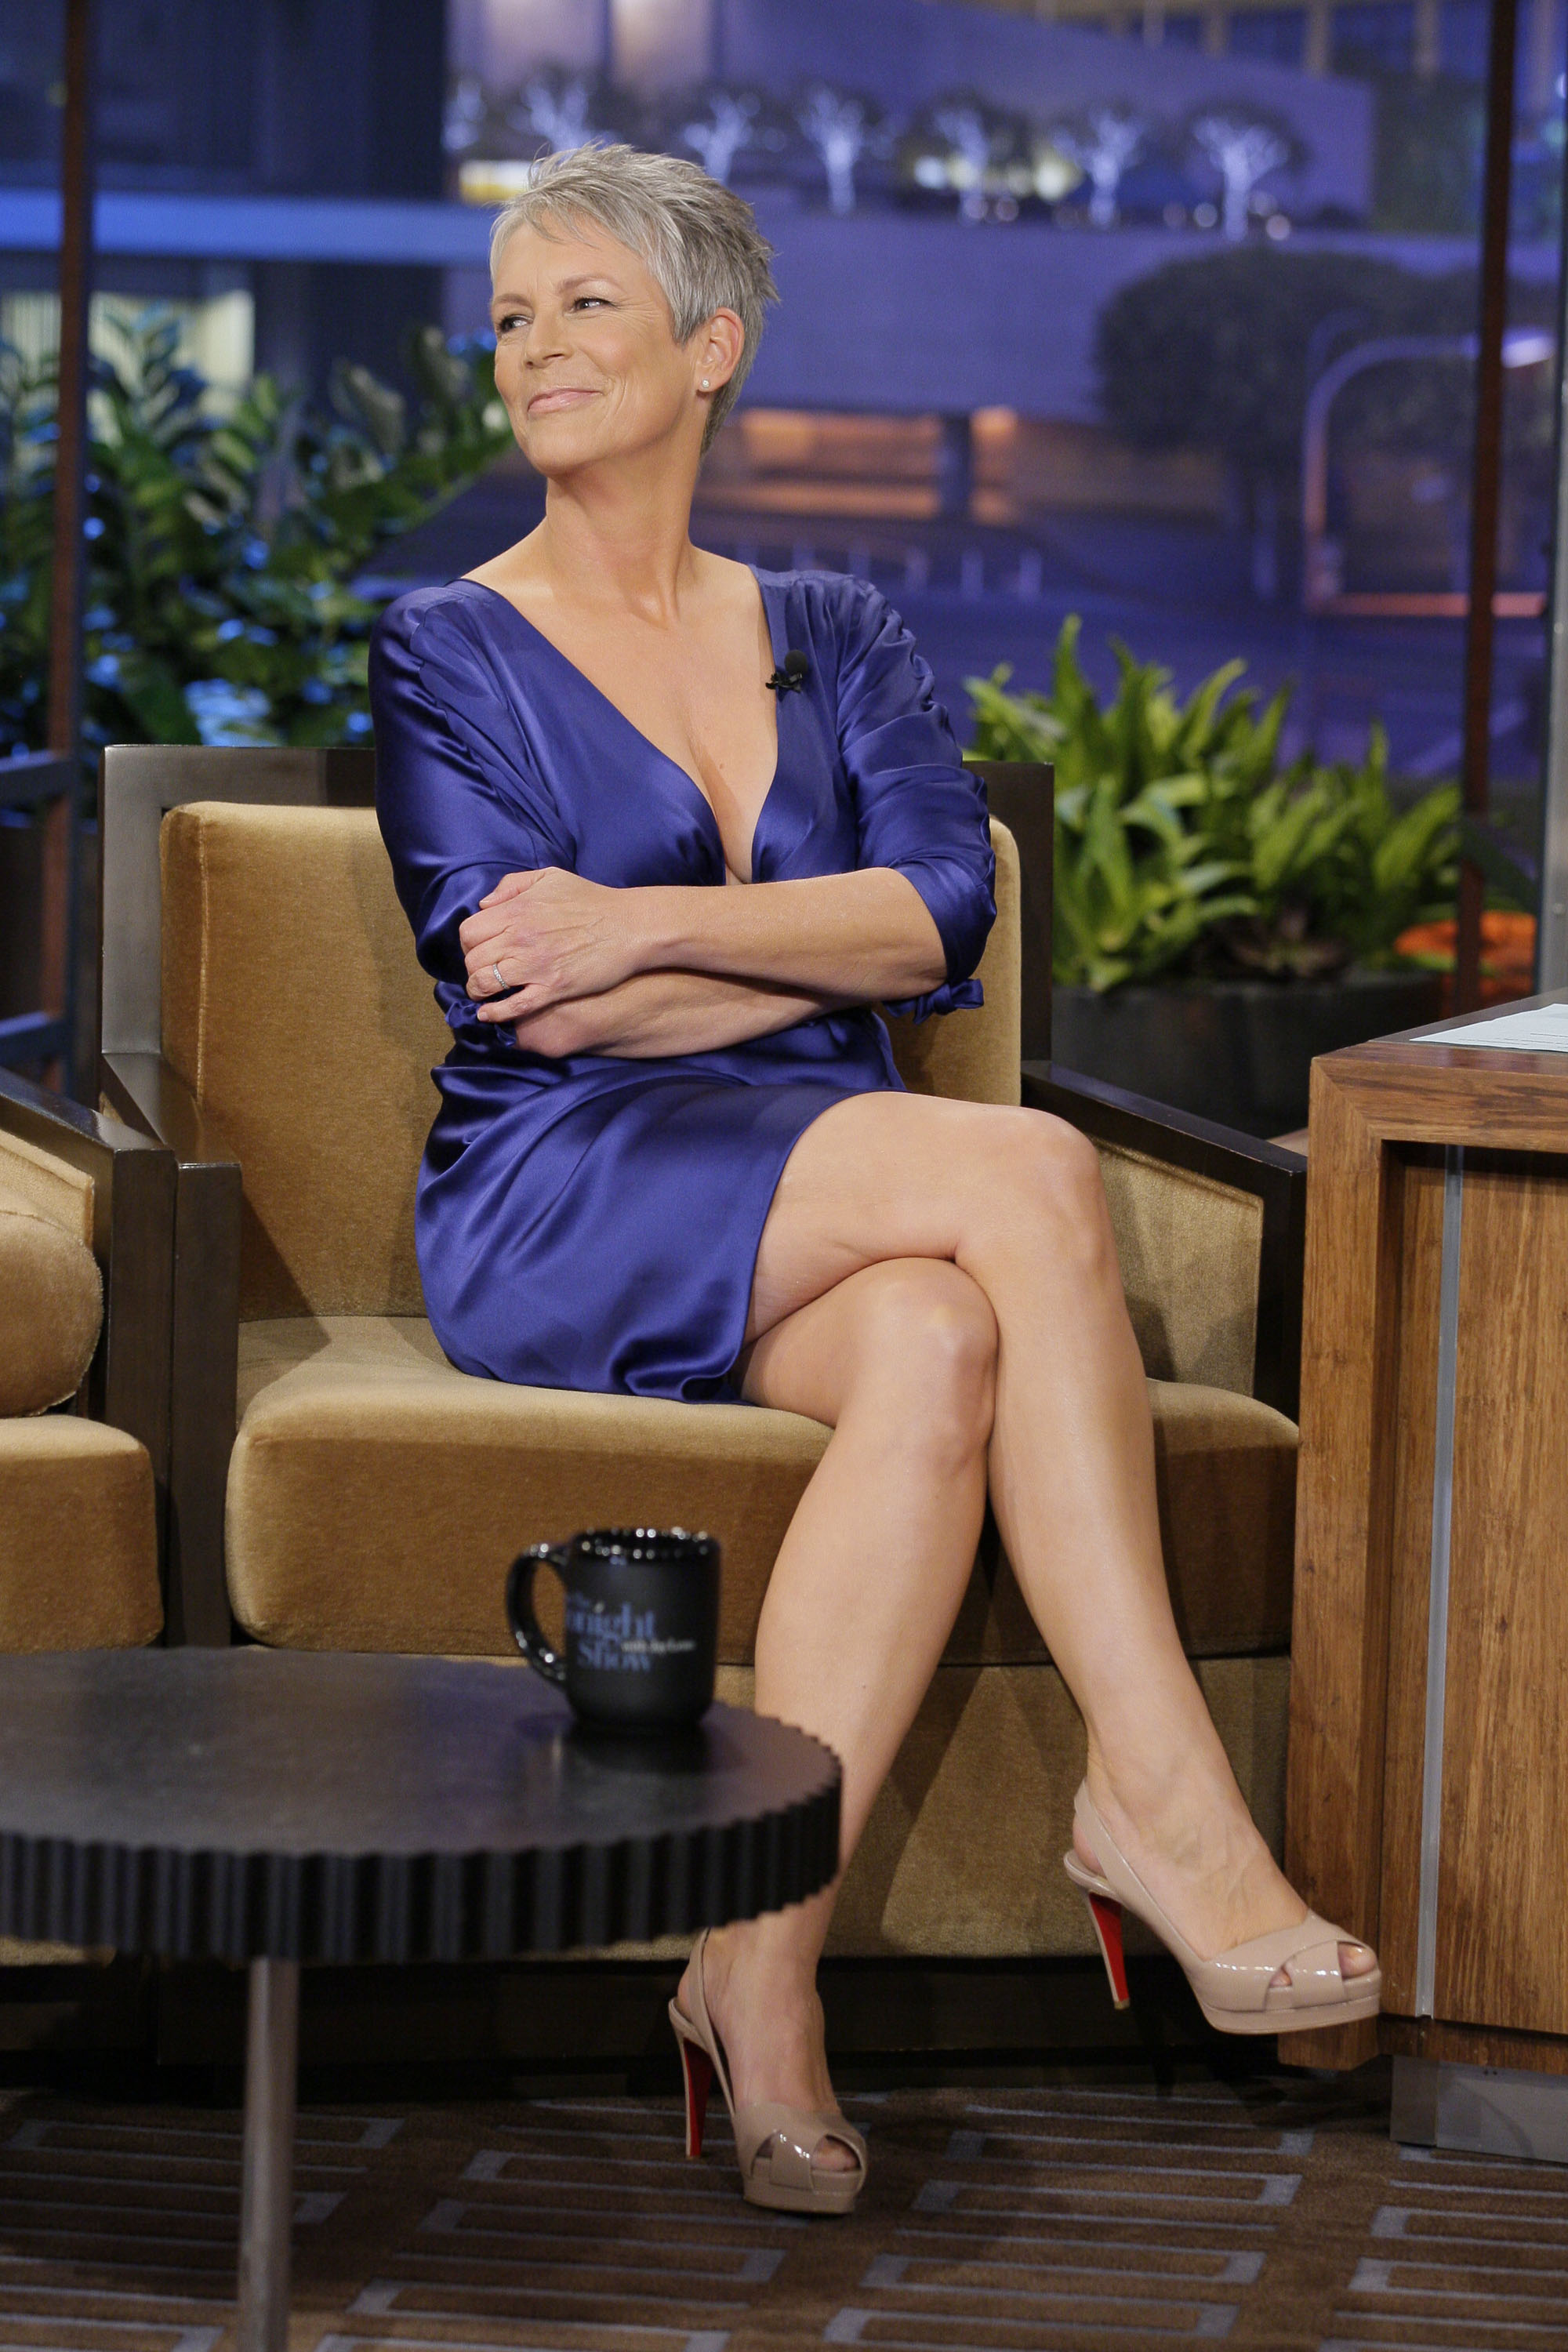 jamie lee curtis - photo #24